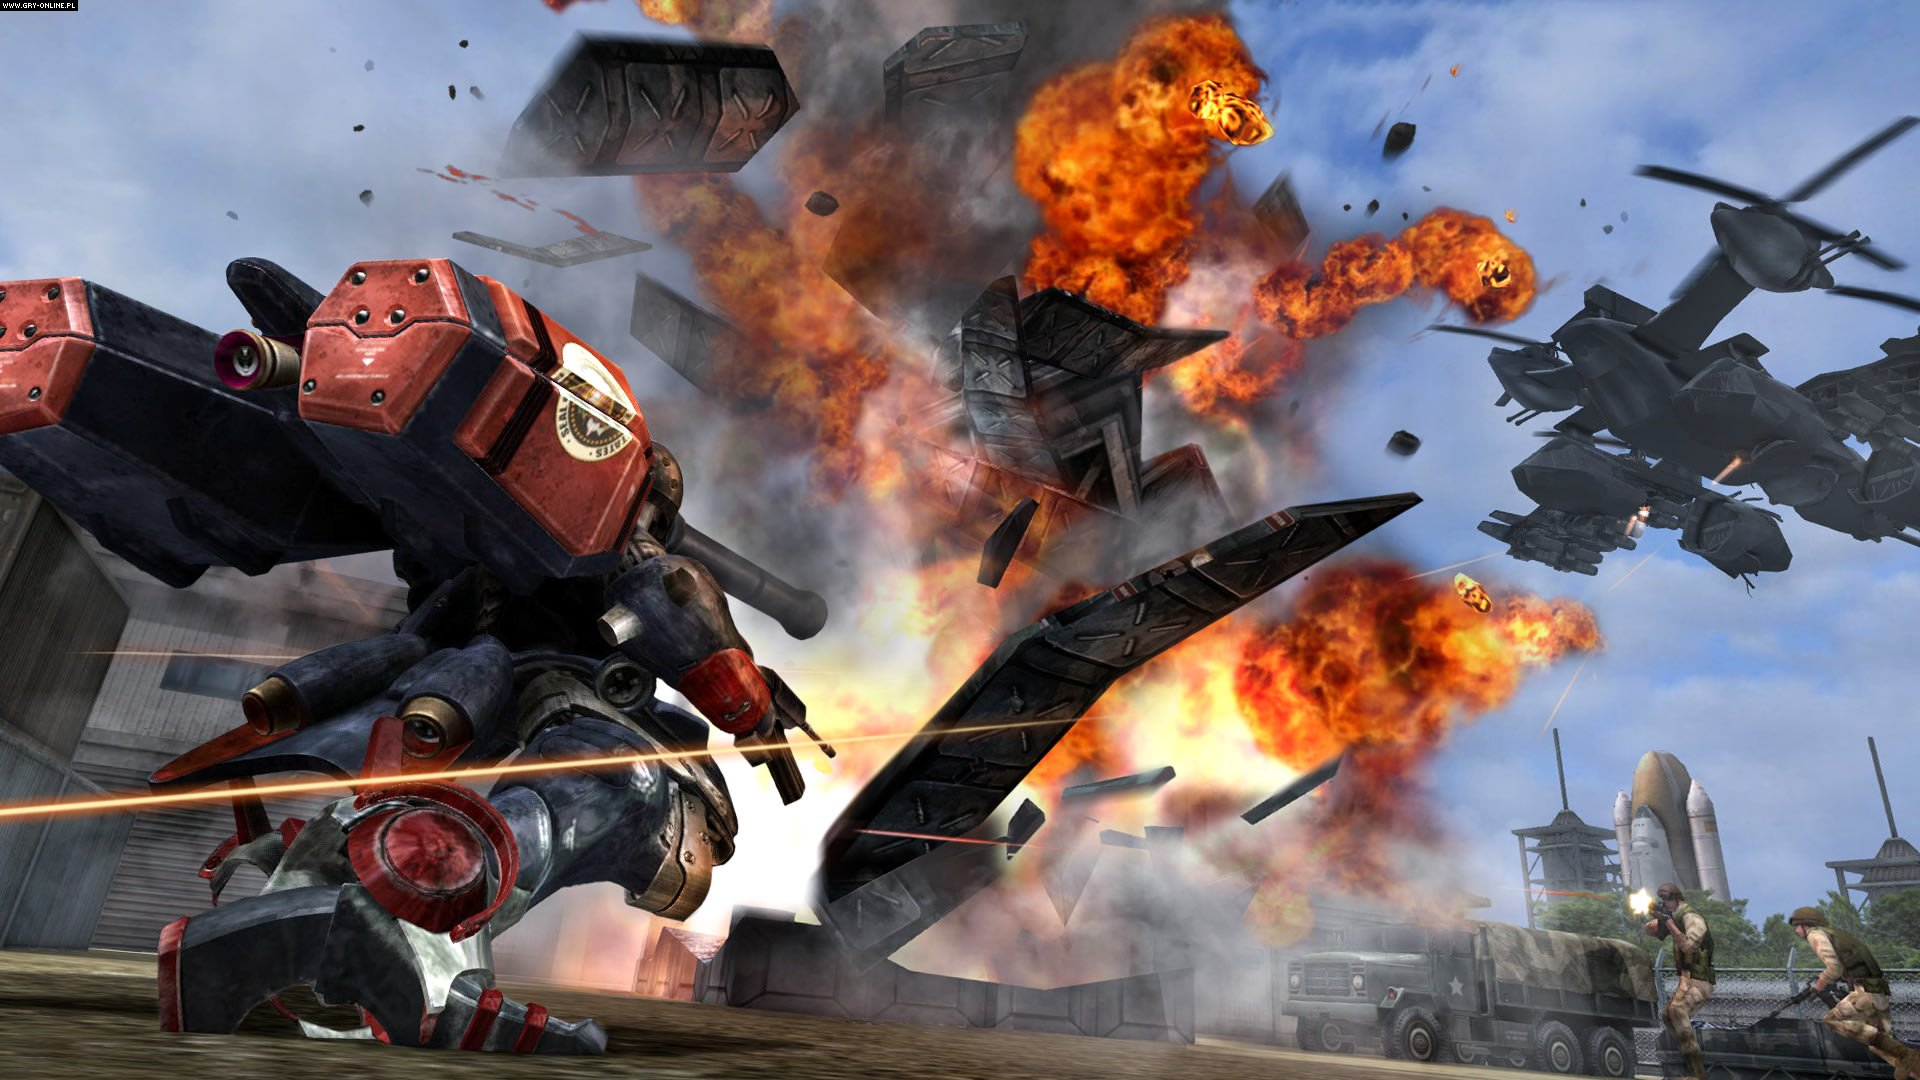 Metal Wolf Chaos XD PC, PS4, XONE Games Image 2/13, FromSoftware, Devolver Digital